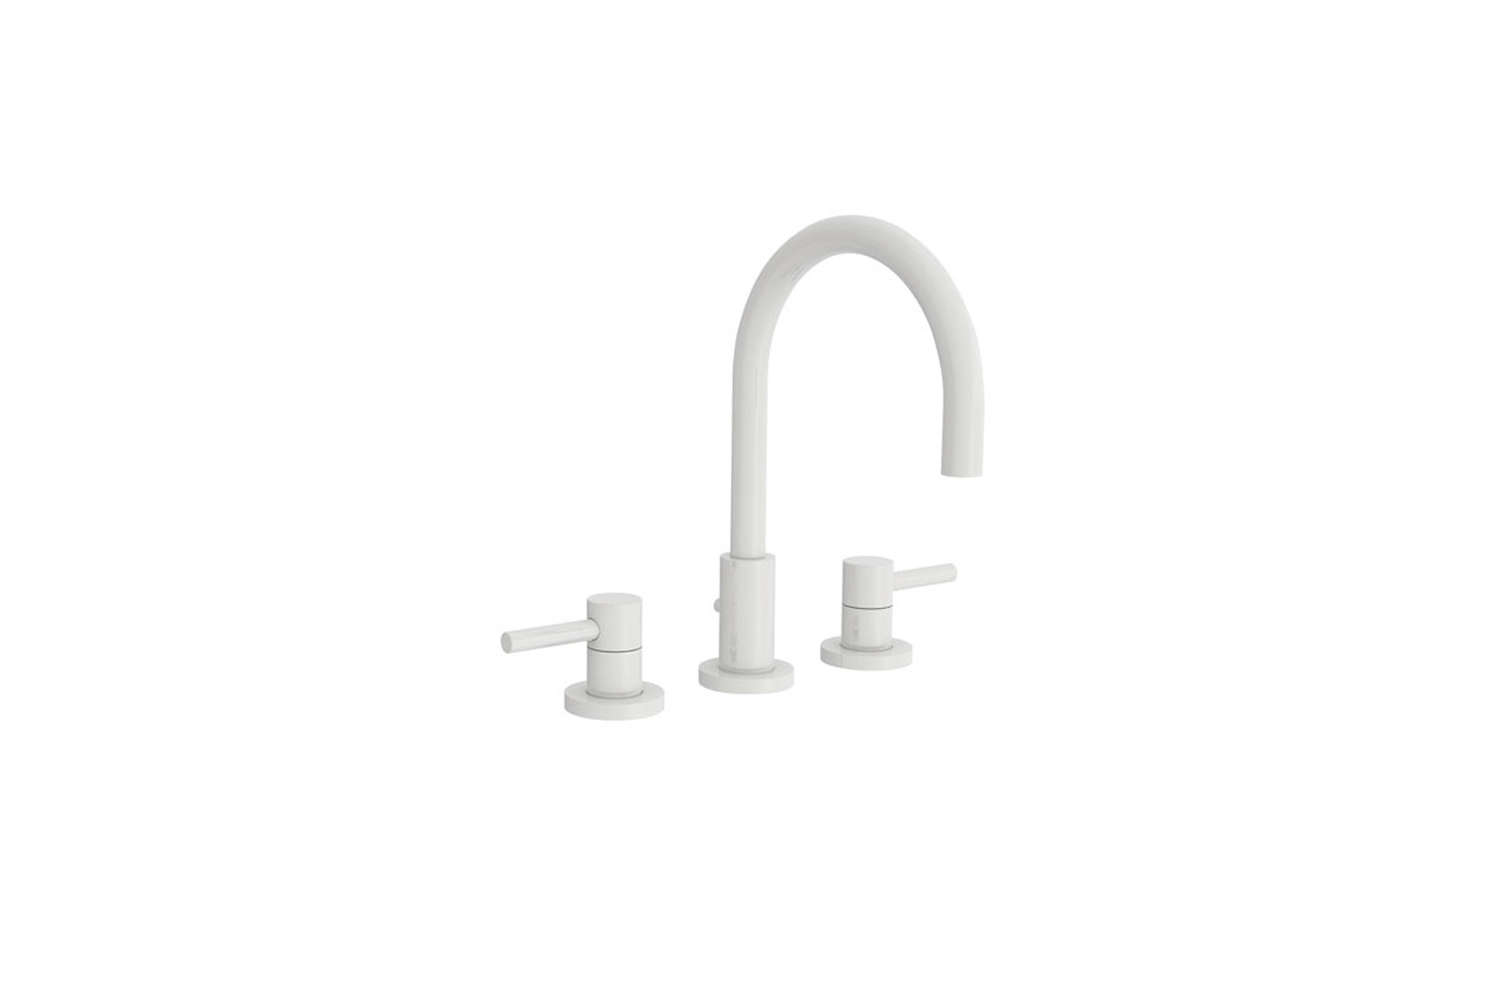 The Newport Brass East Linear 8-Inch Widespread Bathroom Sink Faucet is $9.0